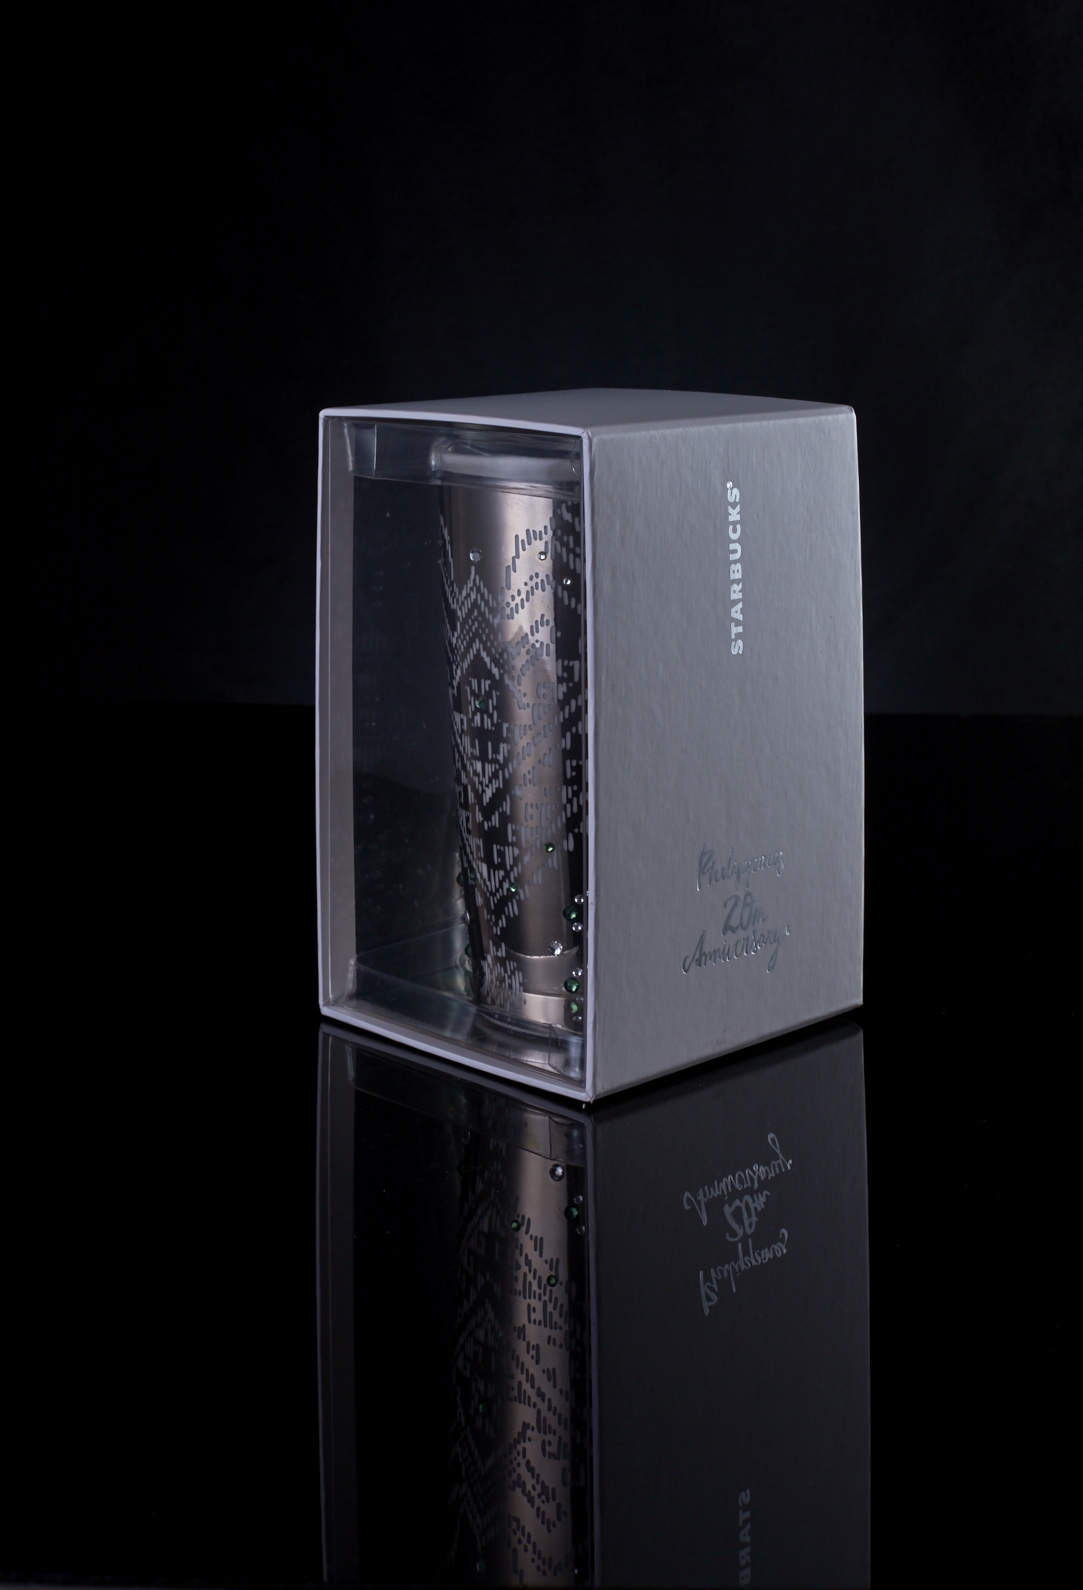 5f66bdda3b2f It features the 20th anniversary weave pattern in silver foil and offers  both functionality and understated glam for P895. Each tumbler comes with a  package ...